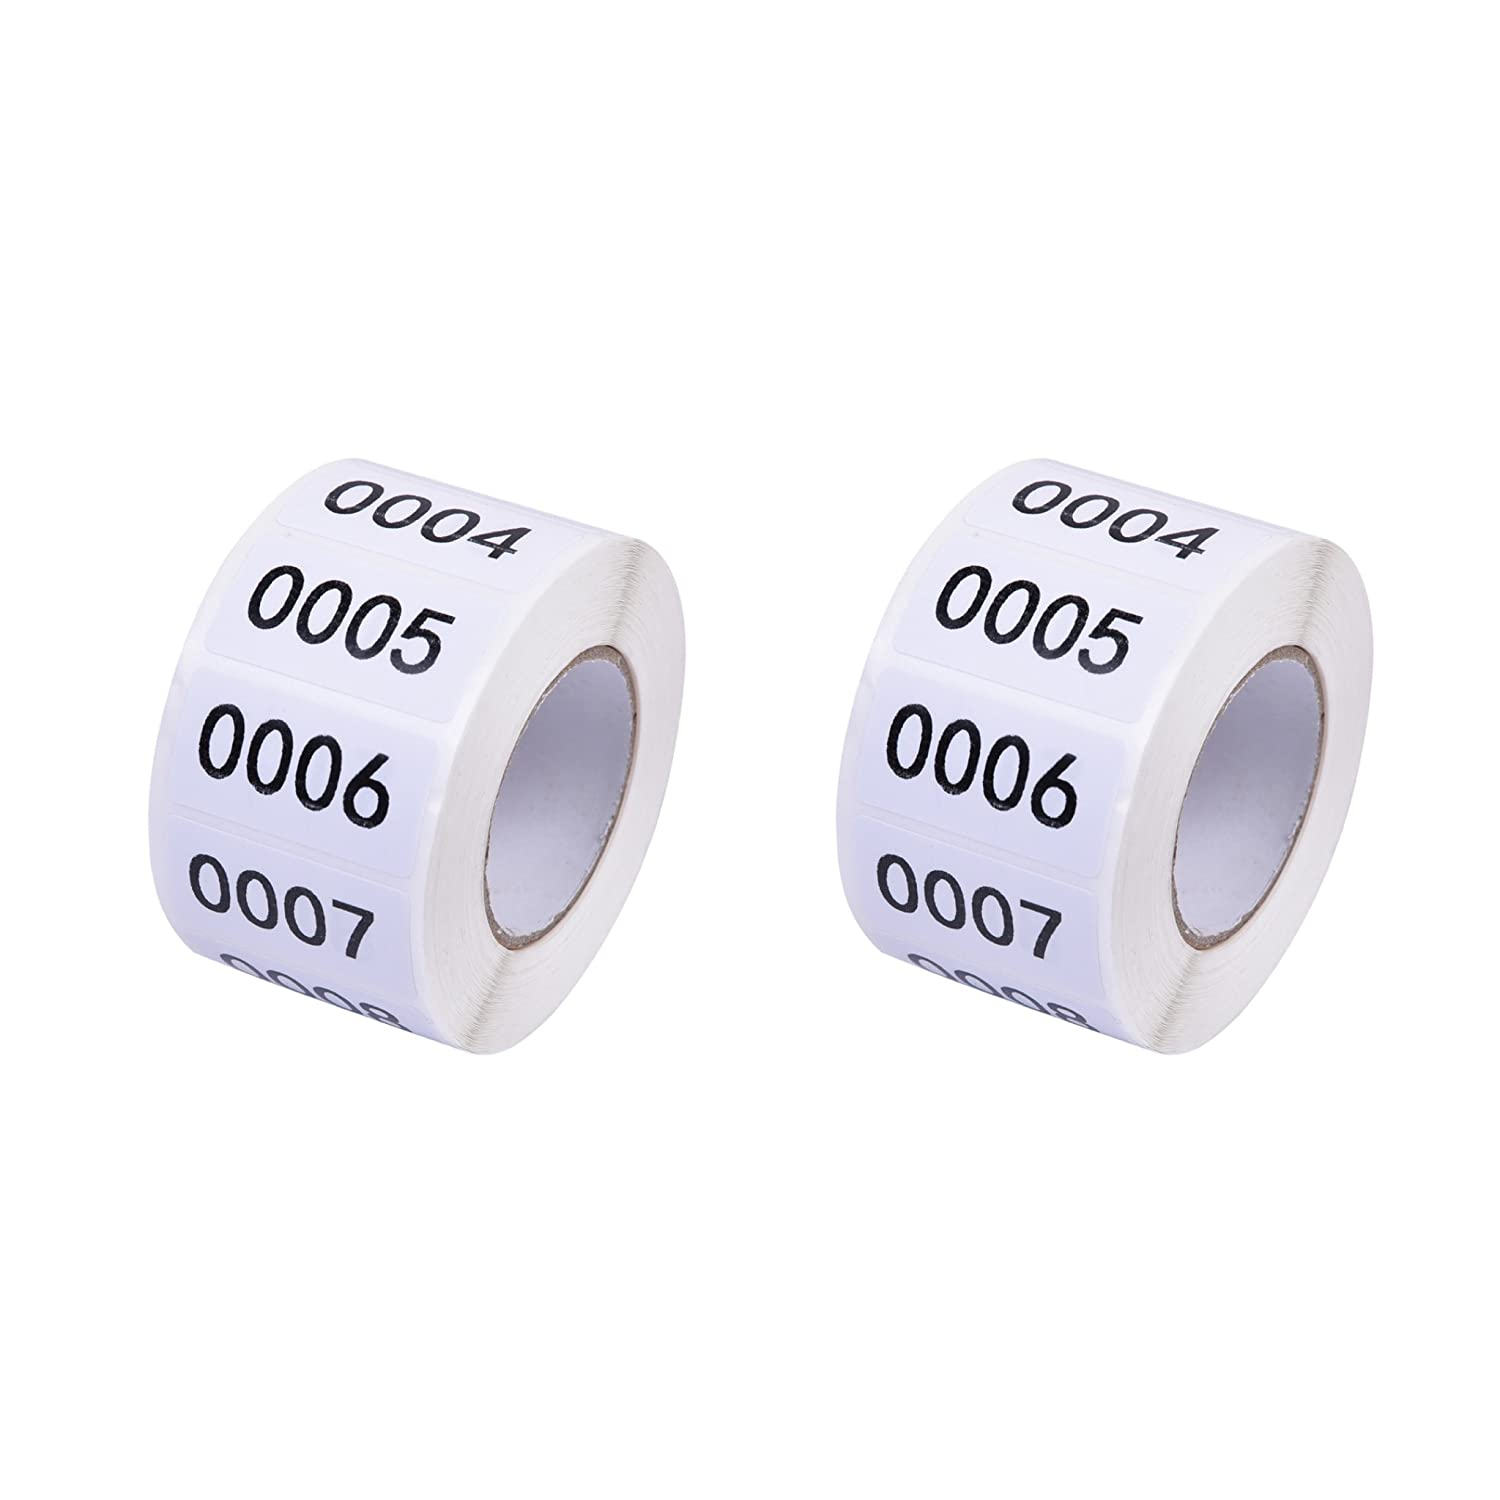 Number Labels - 2 Pack Inventory Labels Consecutive Number Labels Inventory Stickers Product Claiming Labels 1-1000 Clothes Numbers, Moving Box Numbering 0.75 x 1.5 Size Labels Modern Bethel